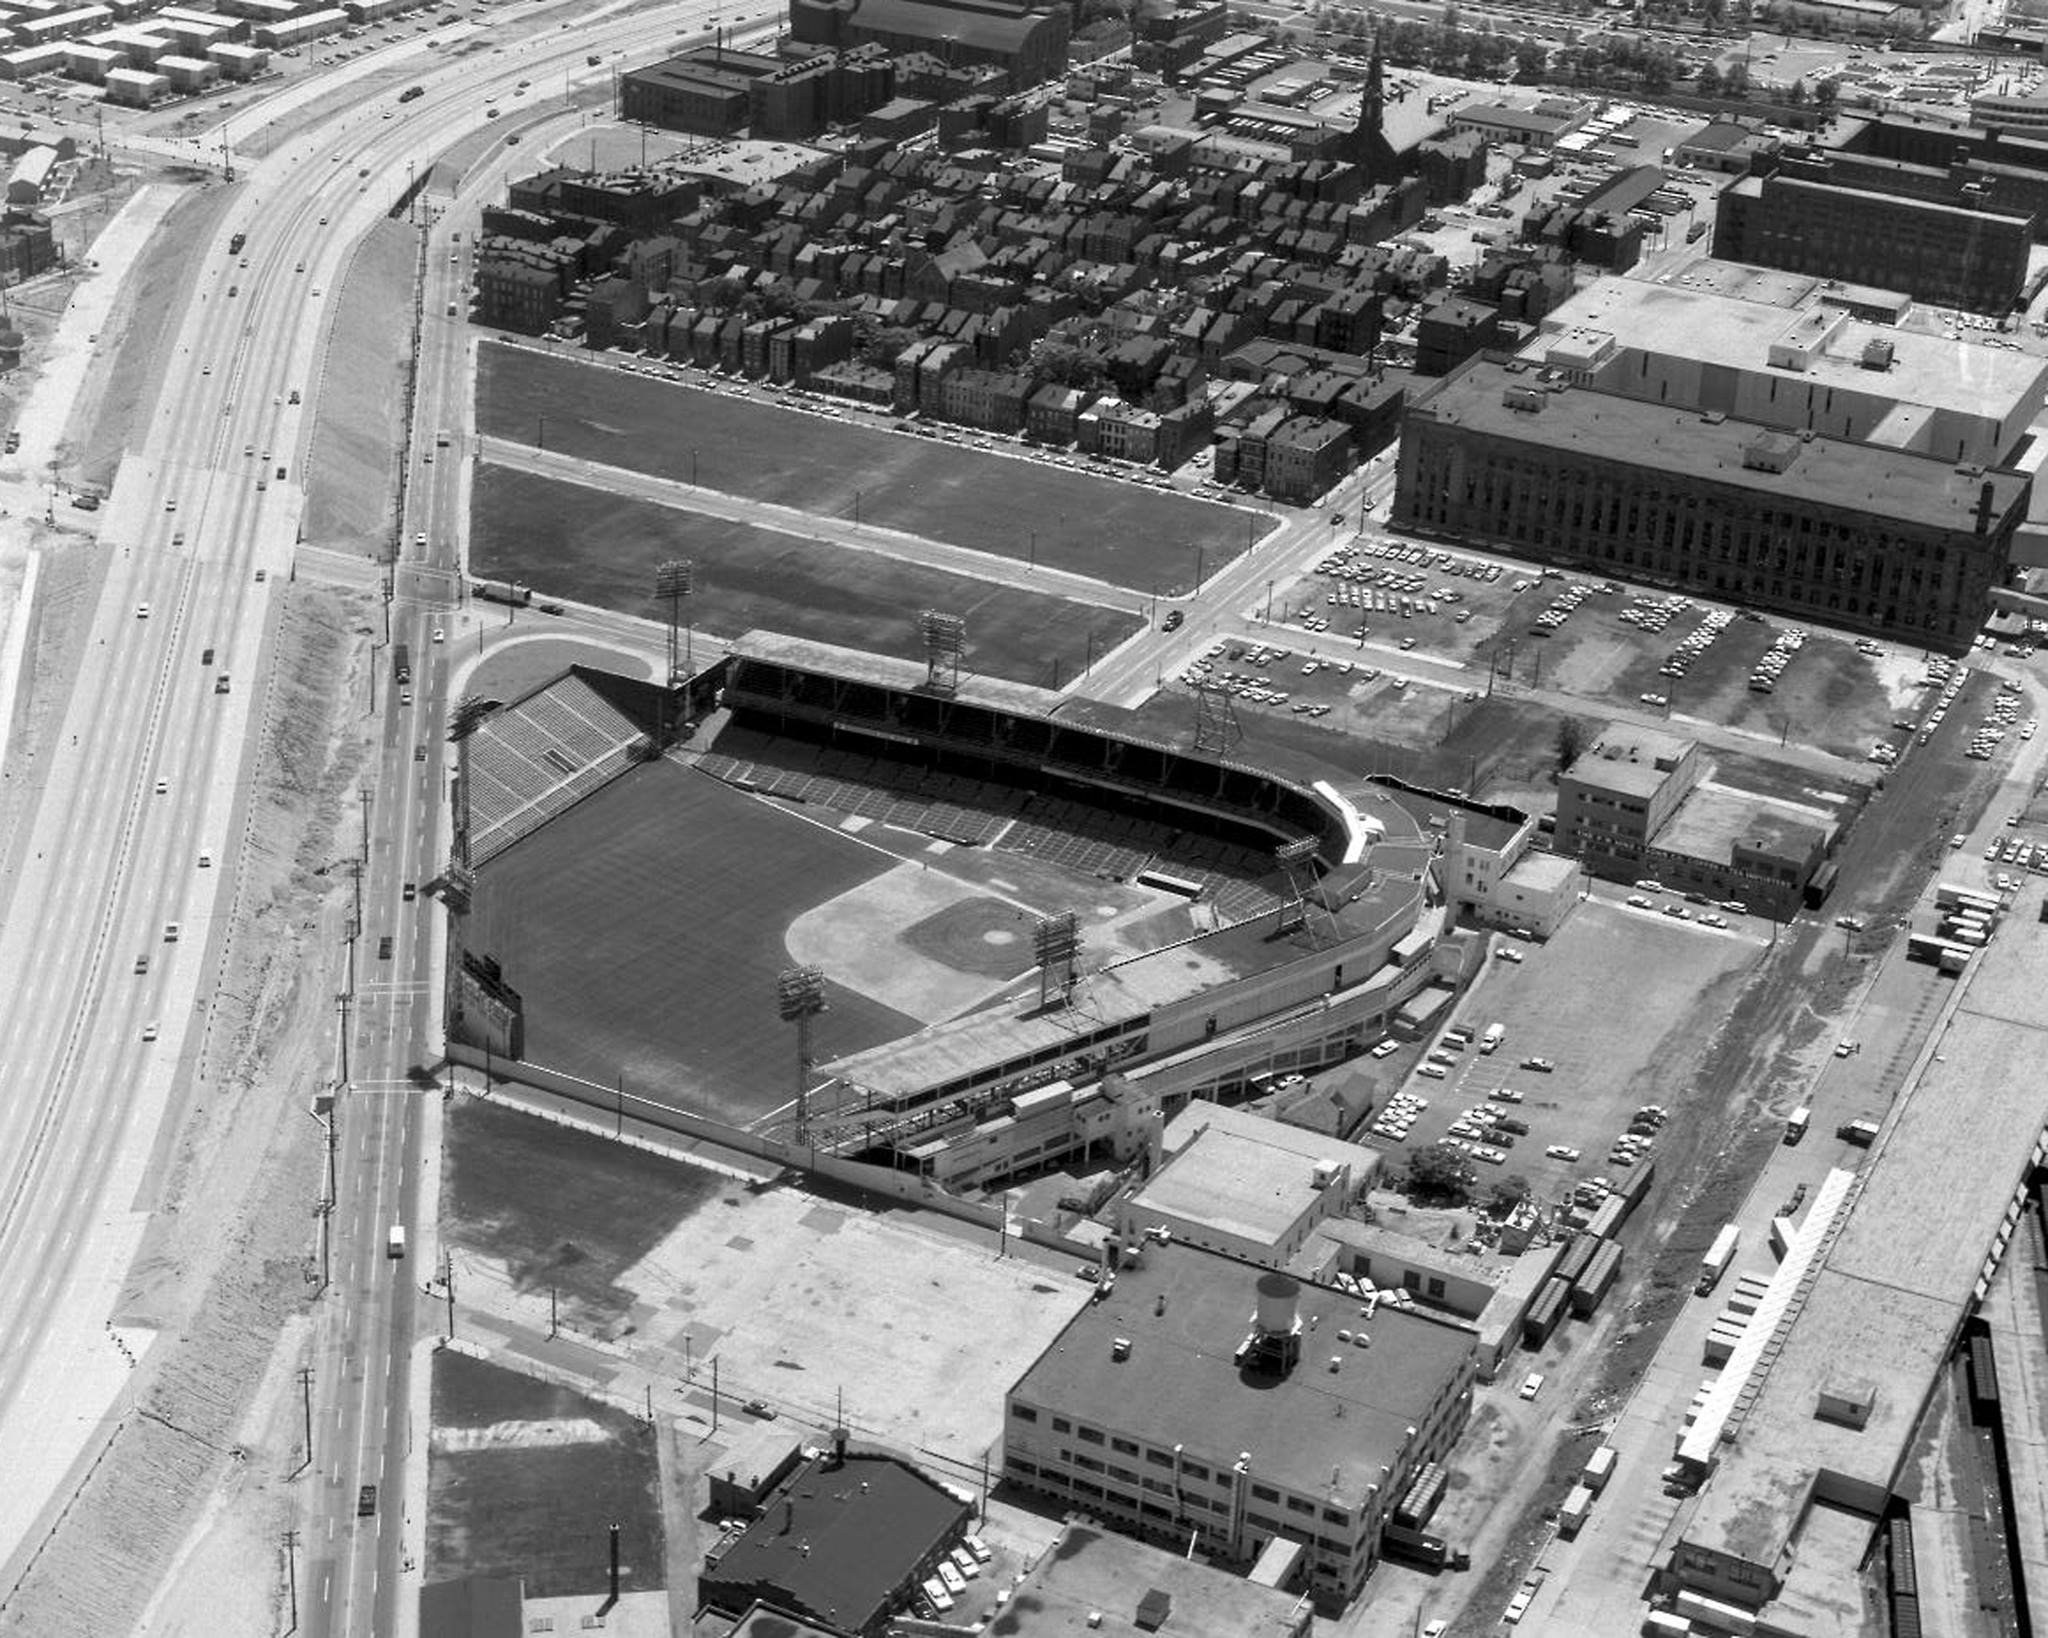 Crosley Field, Cincinnati, ca 1964 - Interstate 75 leaves the slightest sliver of space between it and the Reds home as it also sucked out a lot of the charm of what was once a neighborhood ballpark. Reds fans were allowed to park on the interstate while it was under construction https://t.co/tdovECSZiG